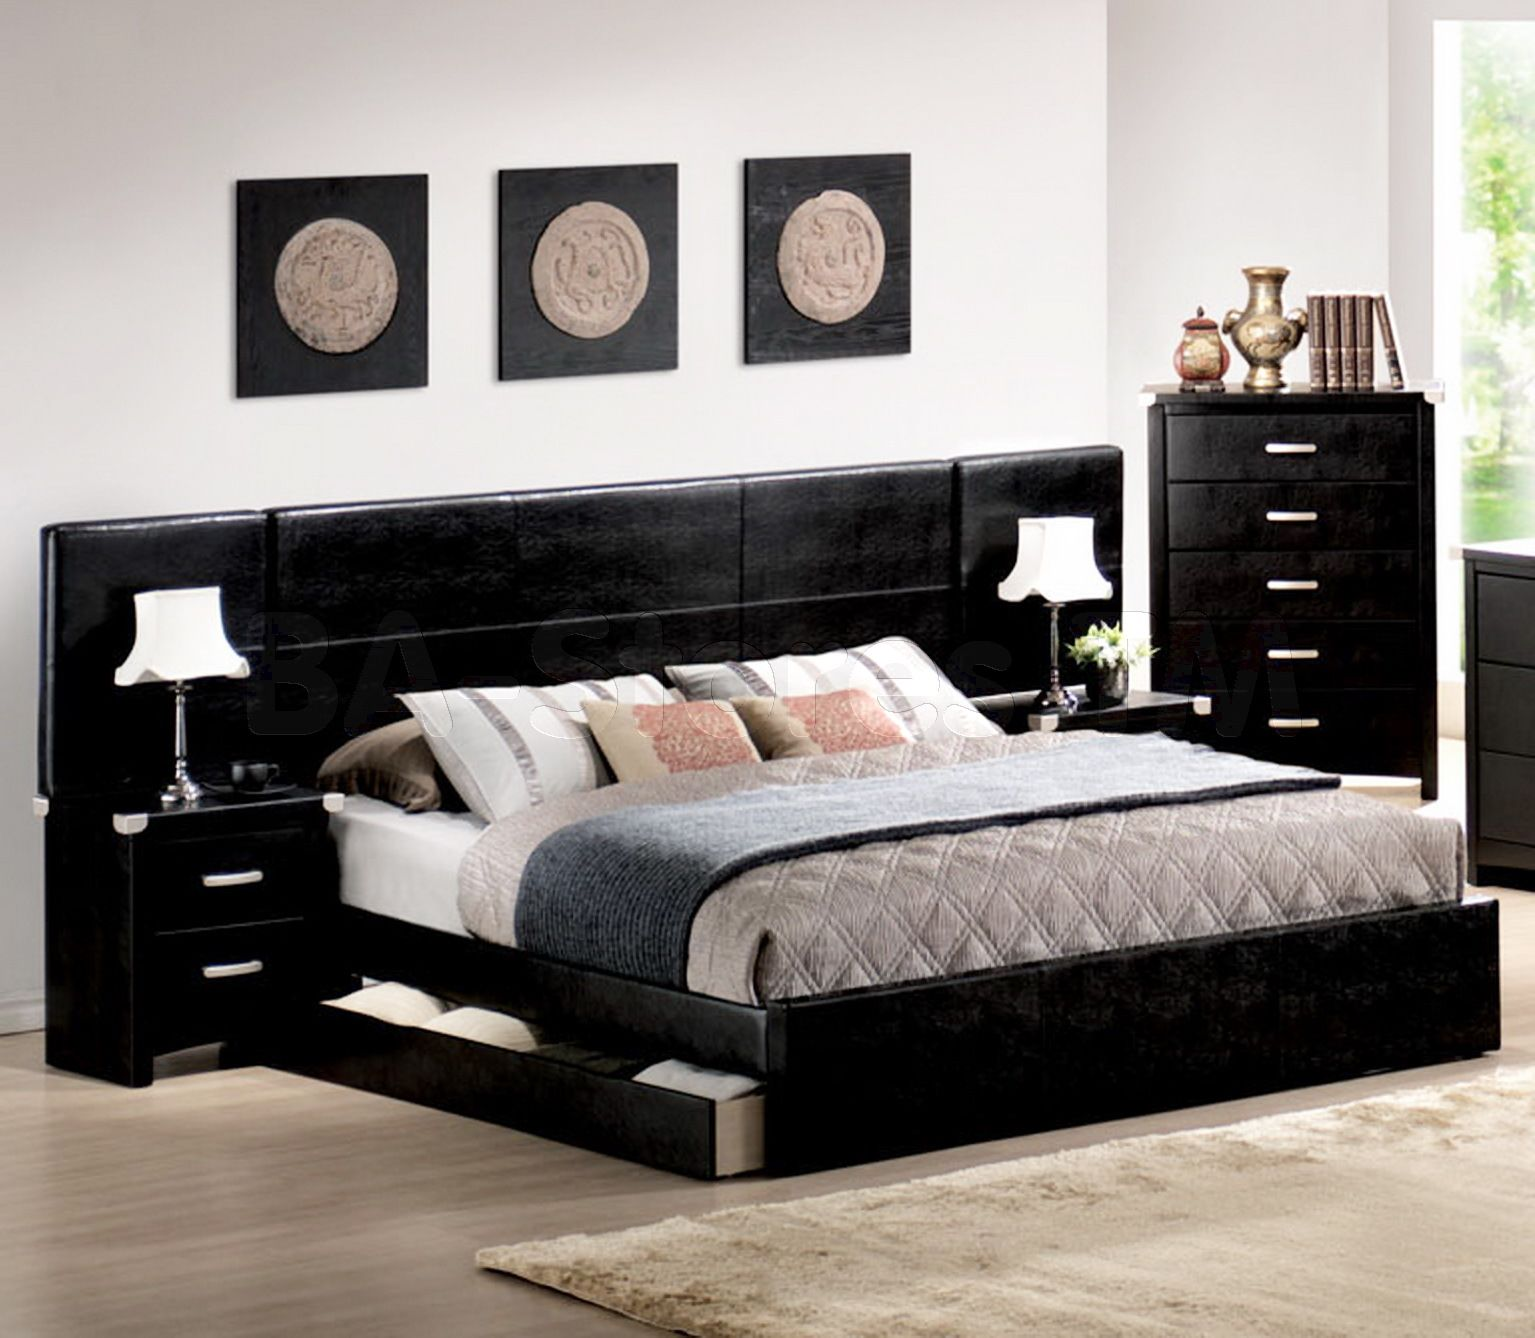 bedroom-sets-furniture